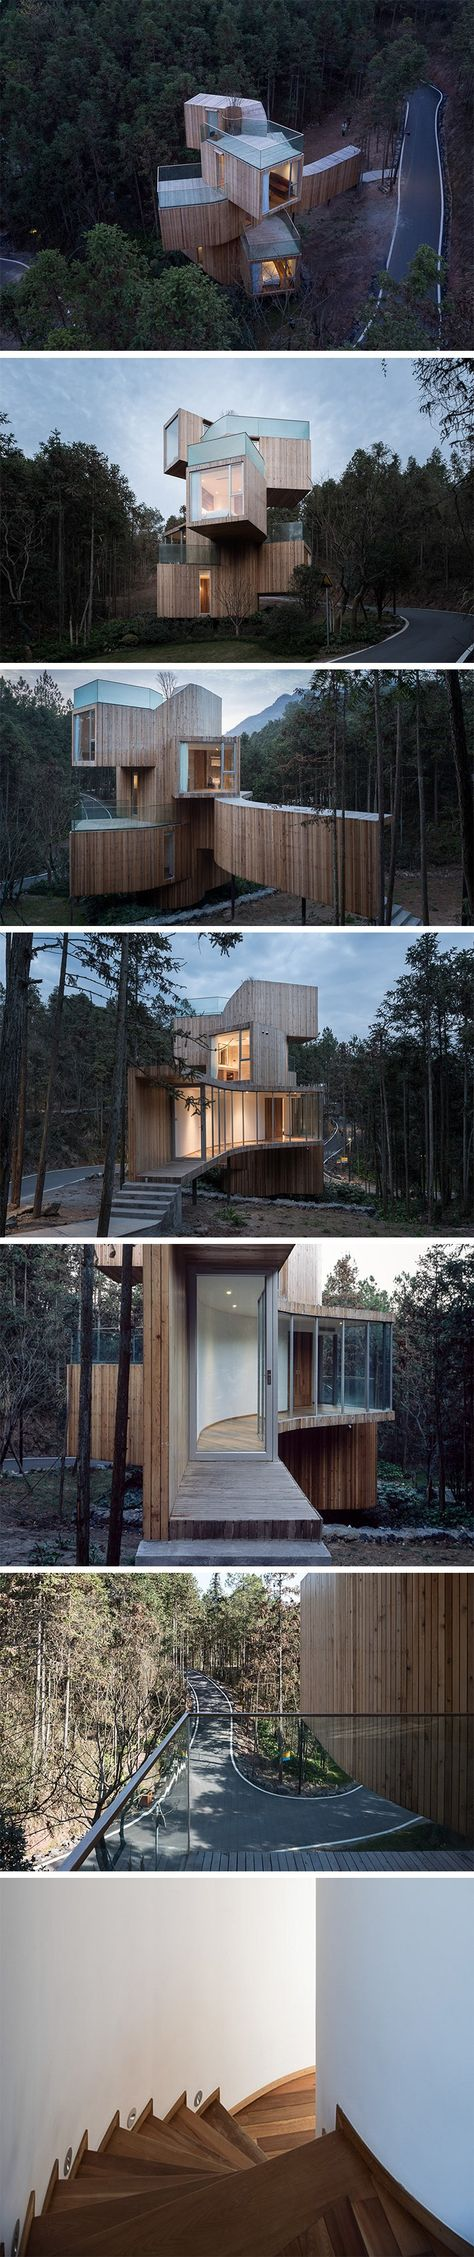 12 Tree House Homes You Should Consider | Cedar Trees, Tree Houses And  Architecture